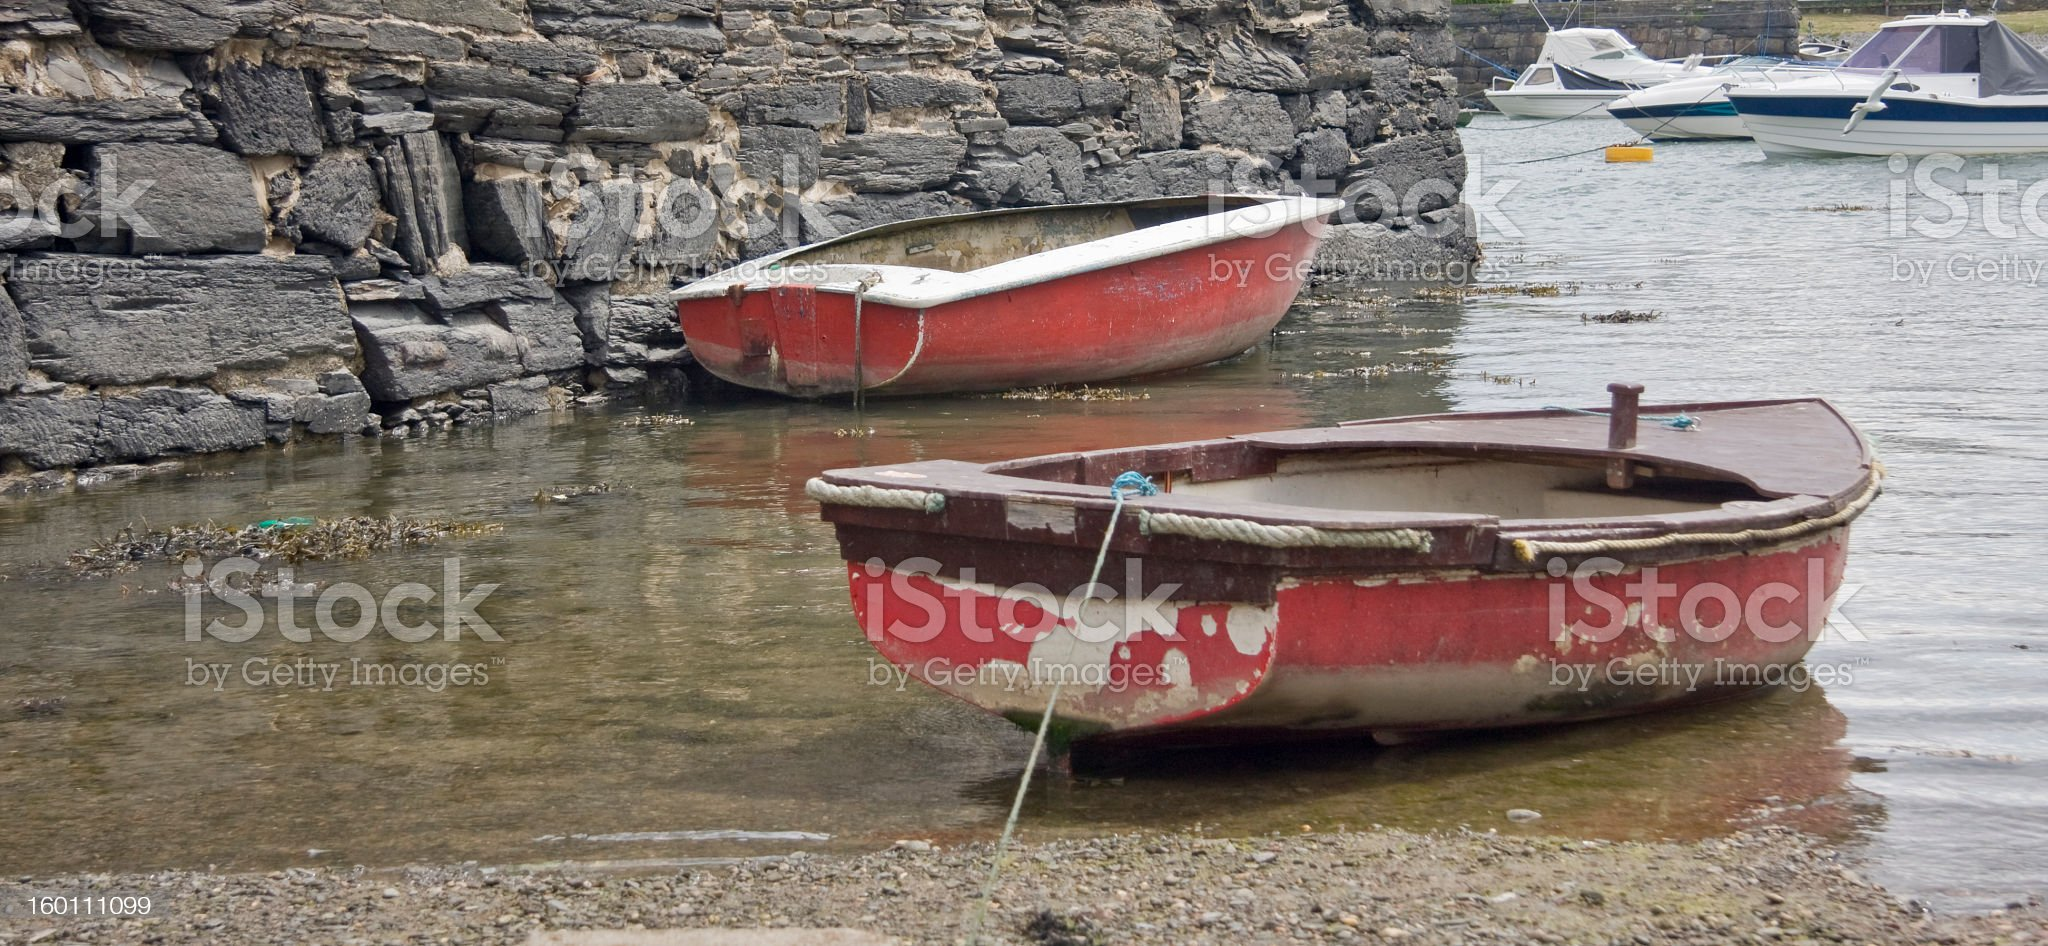 Two rowing boats moored in harbour royalty-free stock photo